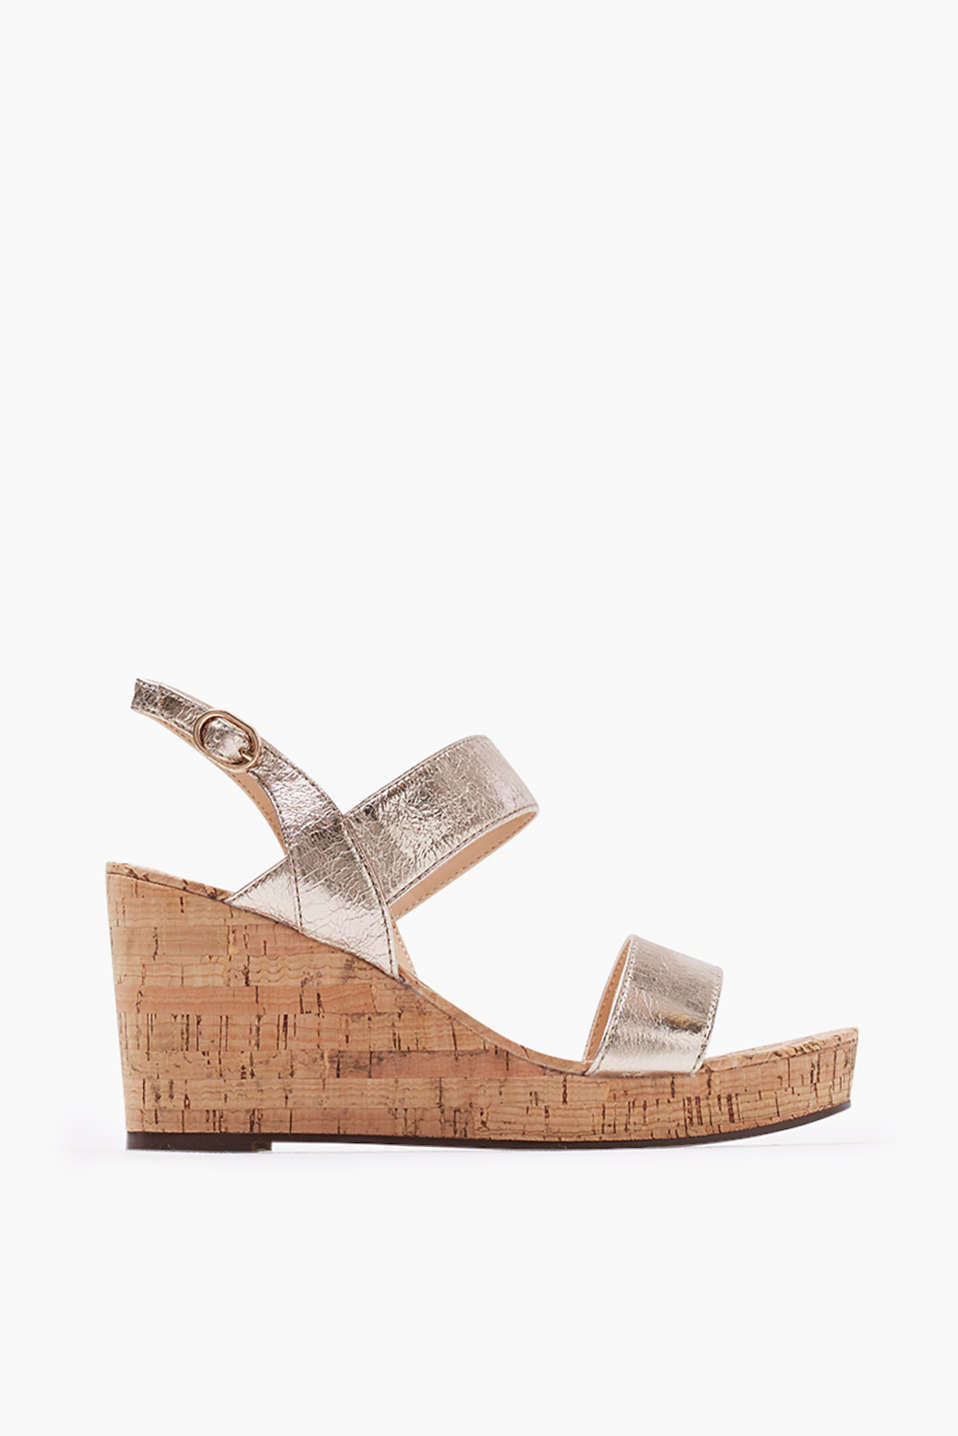 Sandal with wedge heel in metallic-look creased faux leather